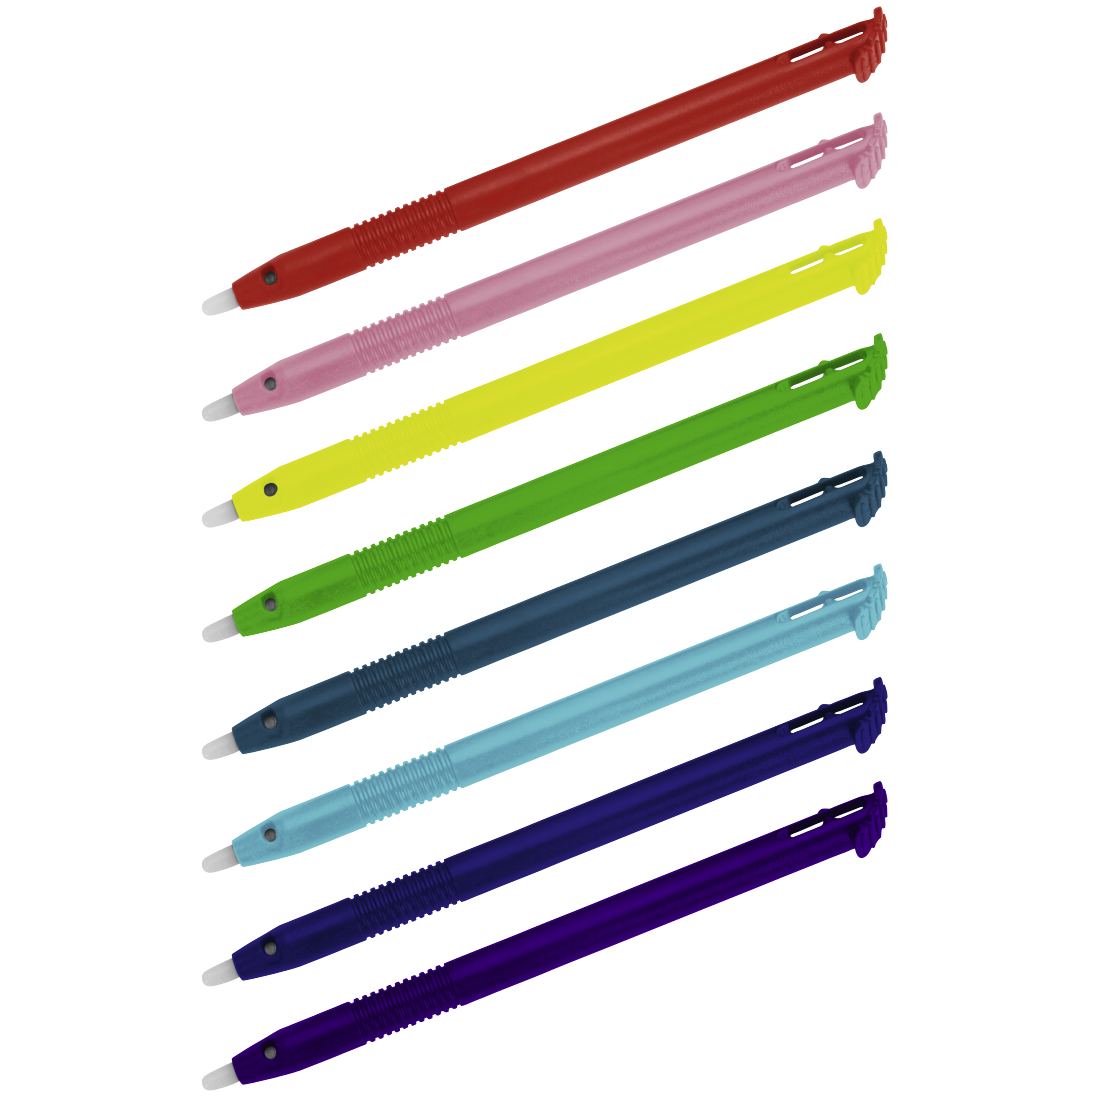 abx High-Res Image - Hama, Input Pens for New 3DS XL, set of 8, rainbow colours